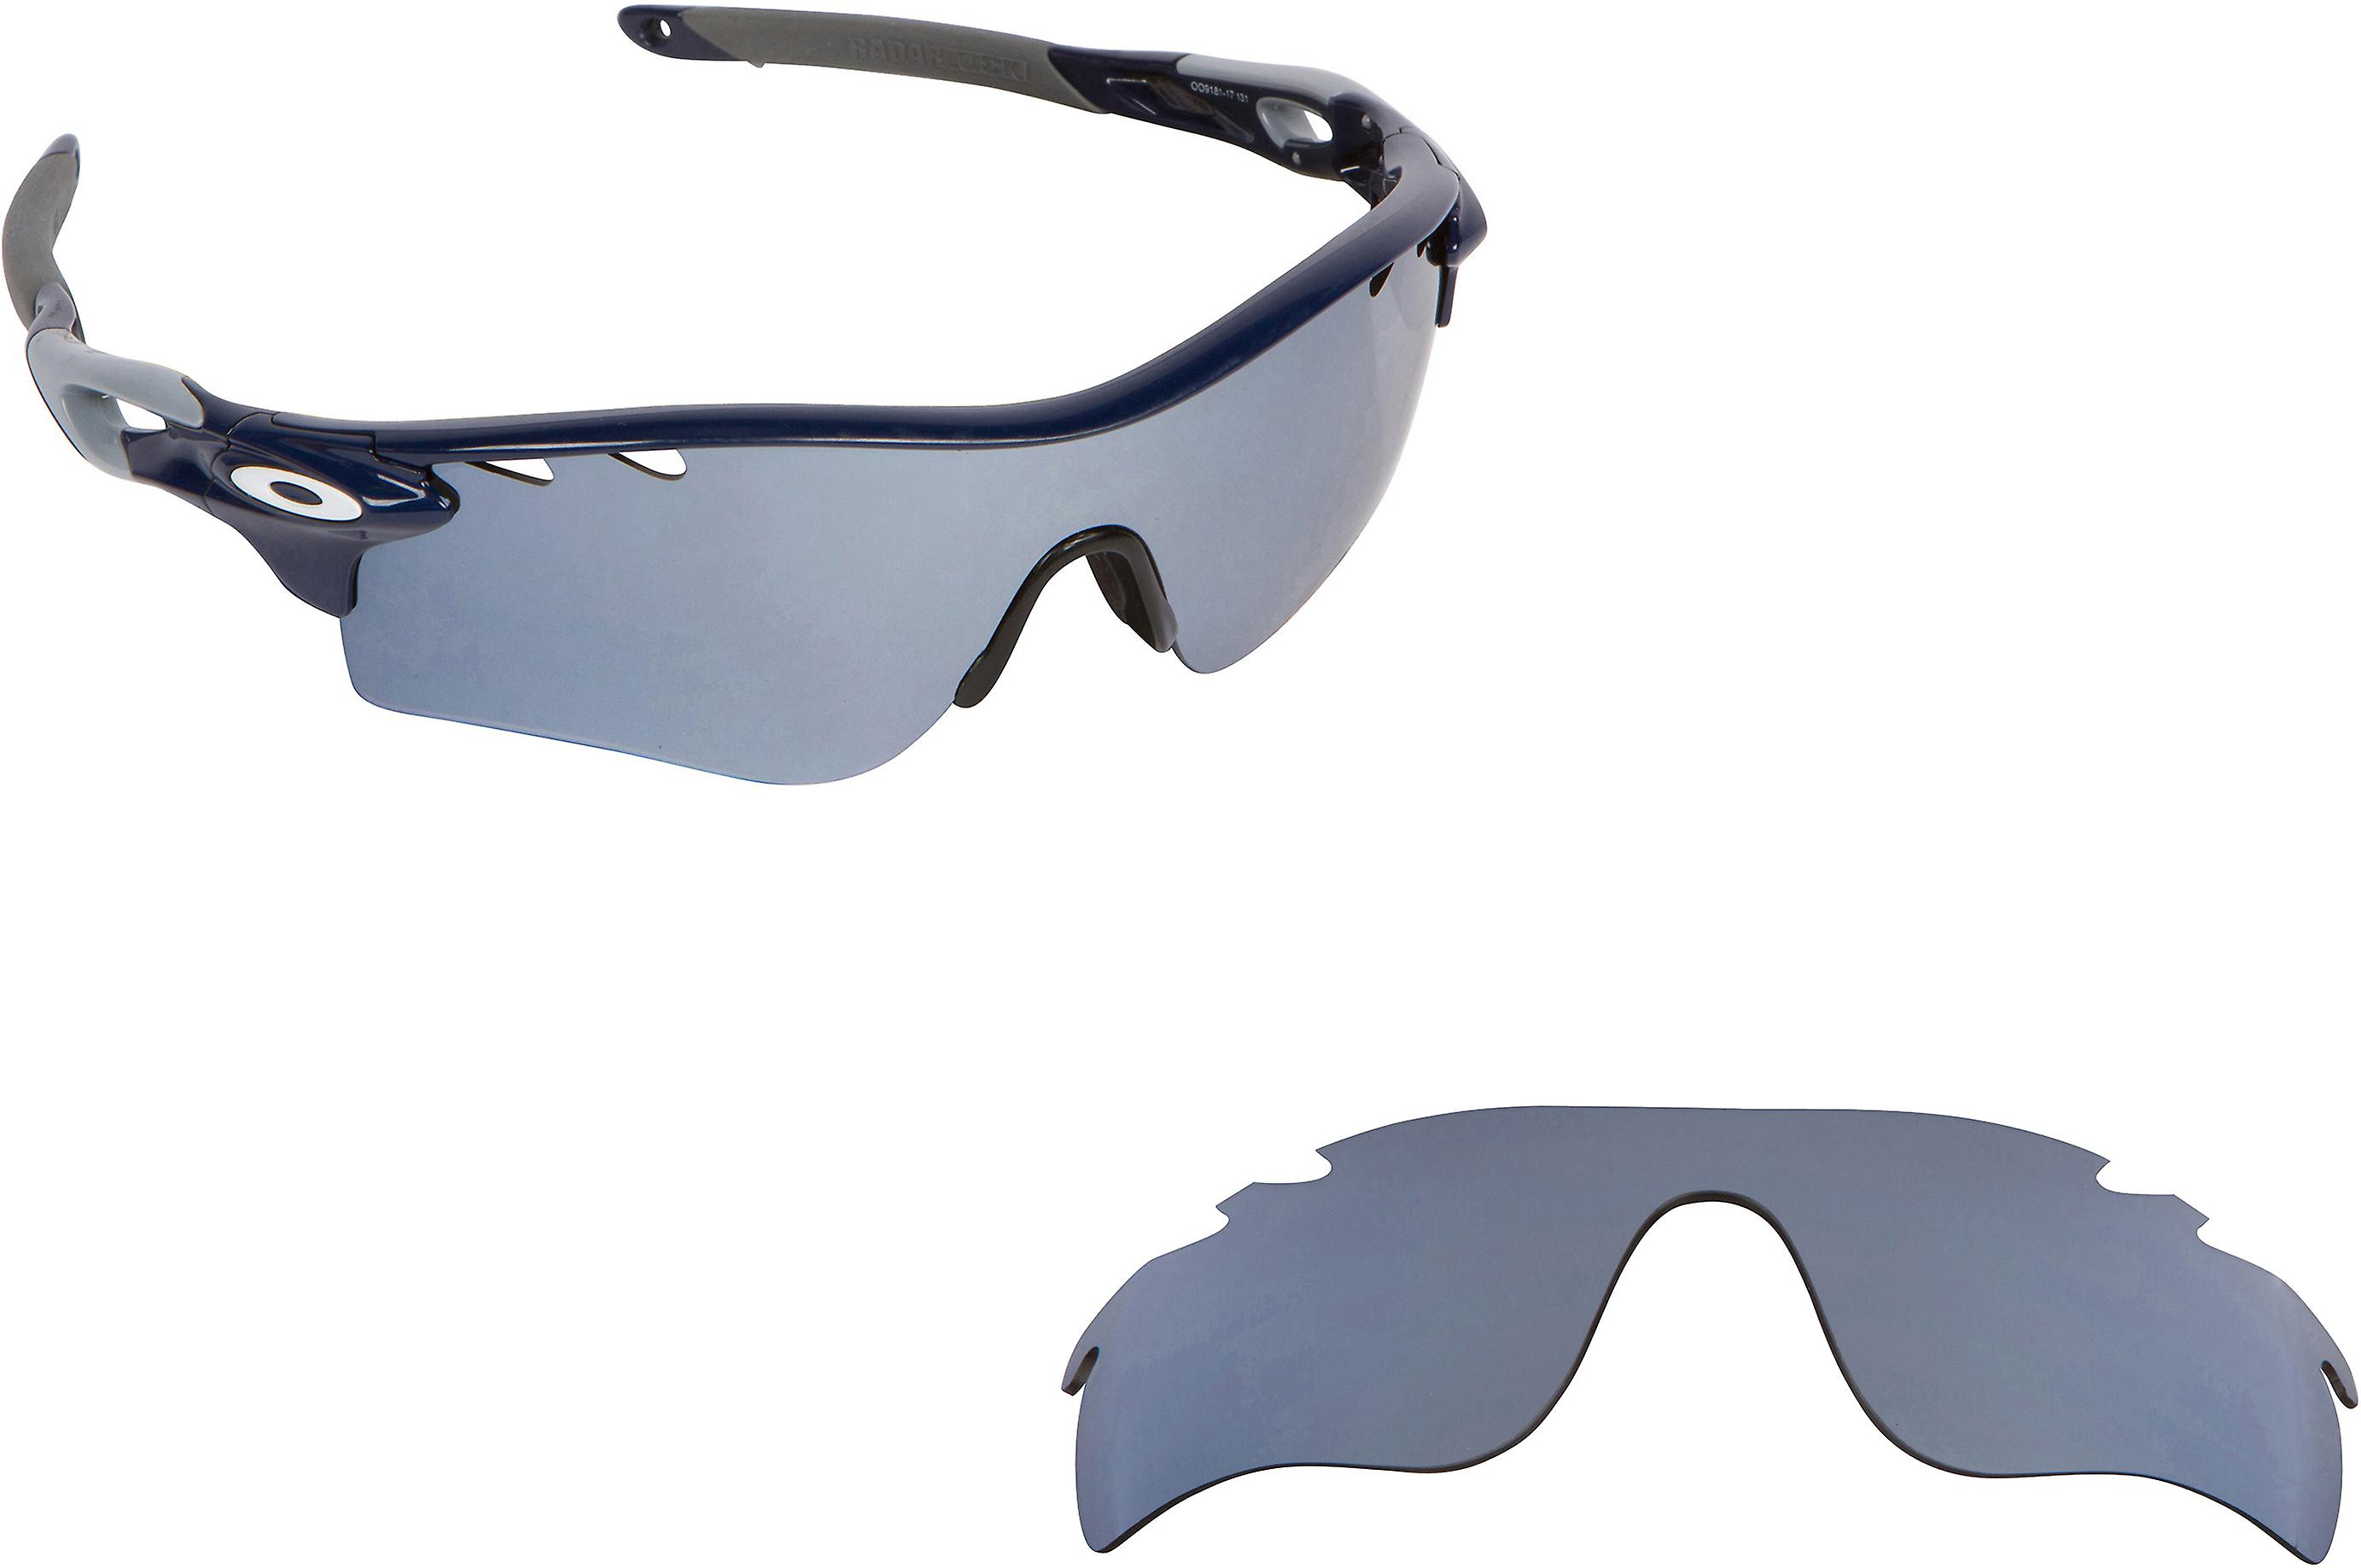 9ebe3349c4 Vented Radarlock Path Replacement Lenses Silver by SEEK fits OAKLEY  Sunglasses